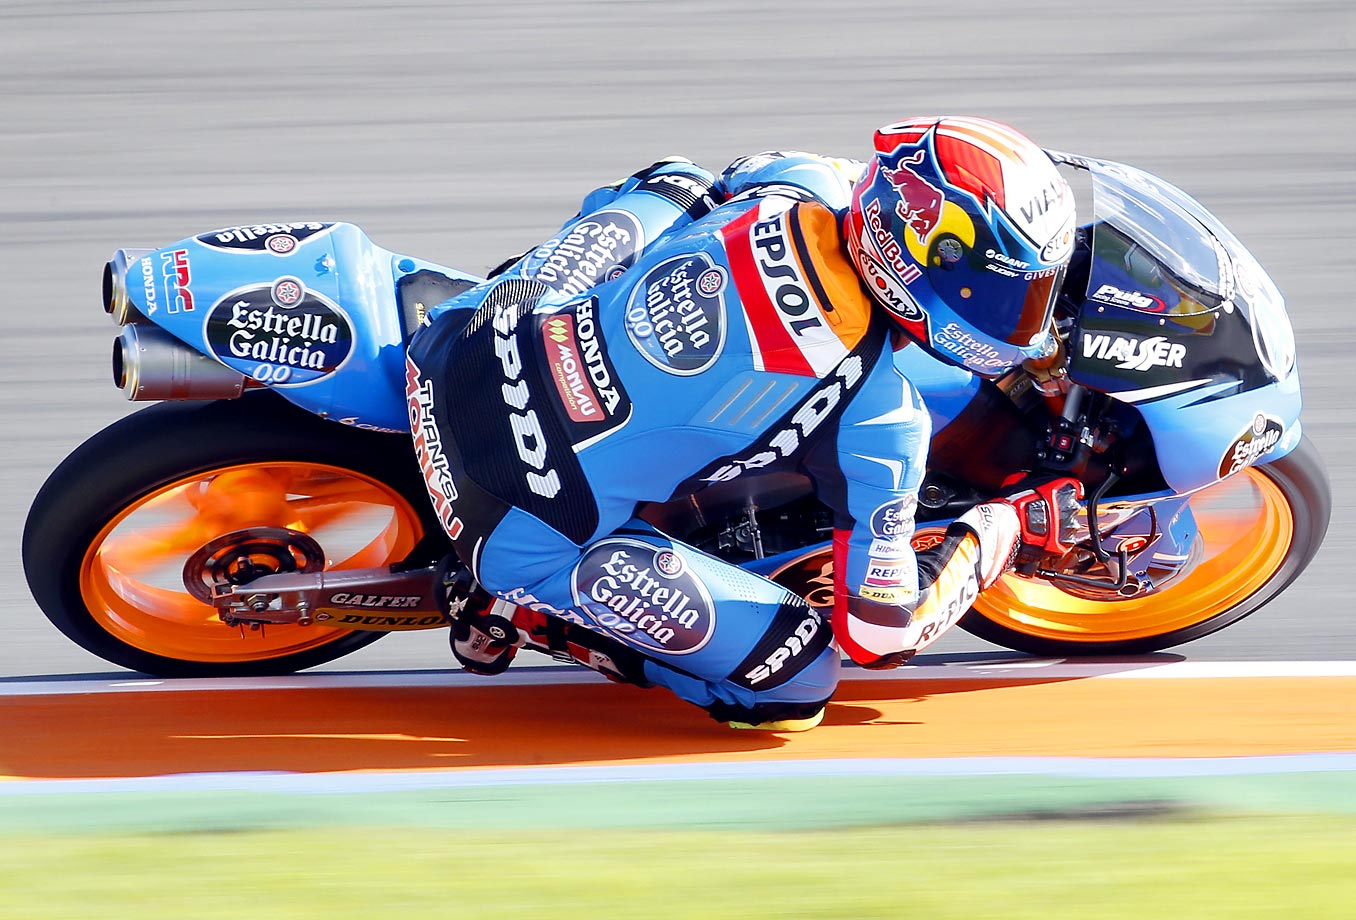 Alex Marquez of Spain rides during free practice at Spain's Valencia Motorcycle Grand Prix, the last race of the season.